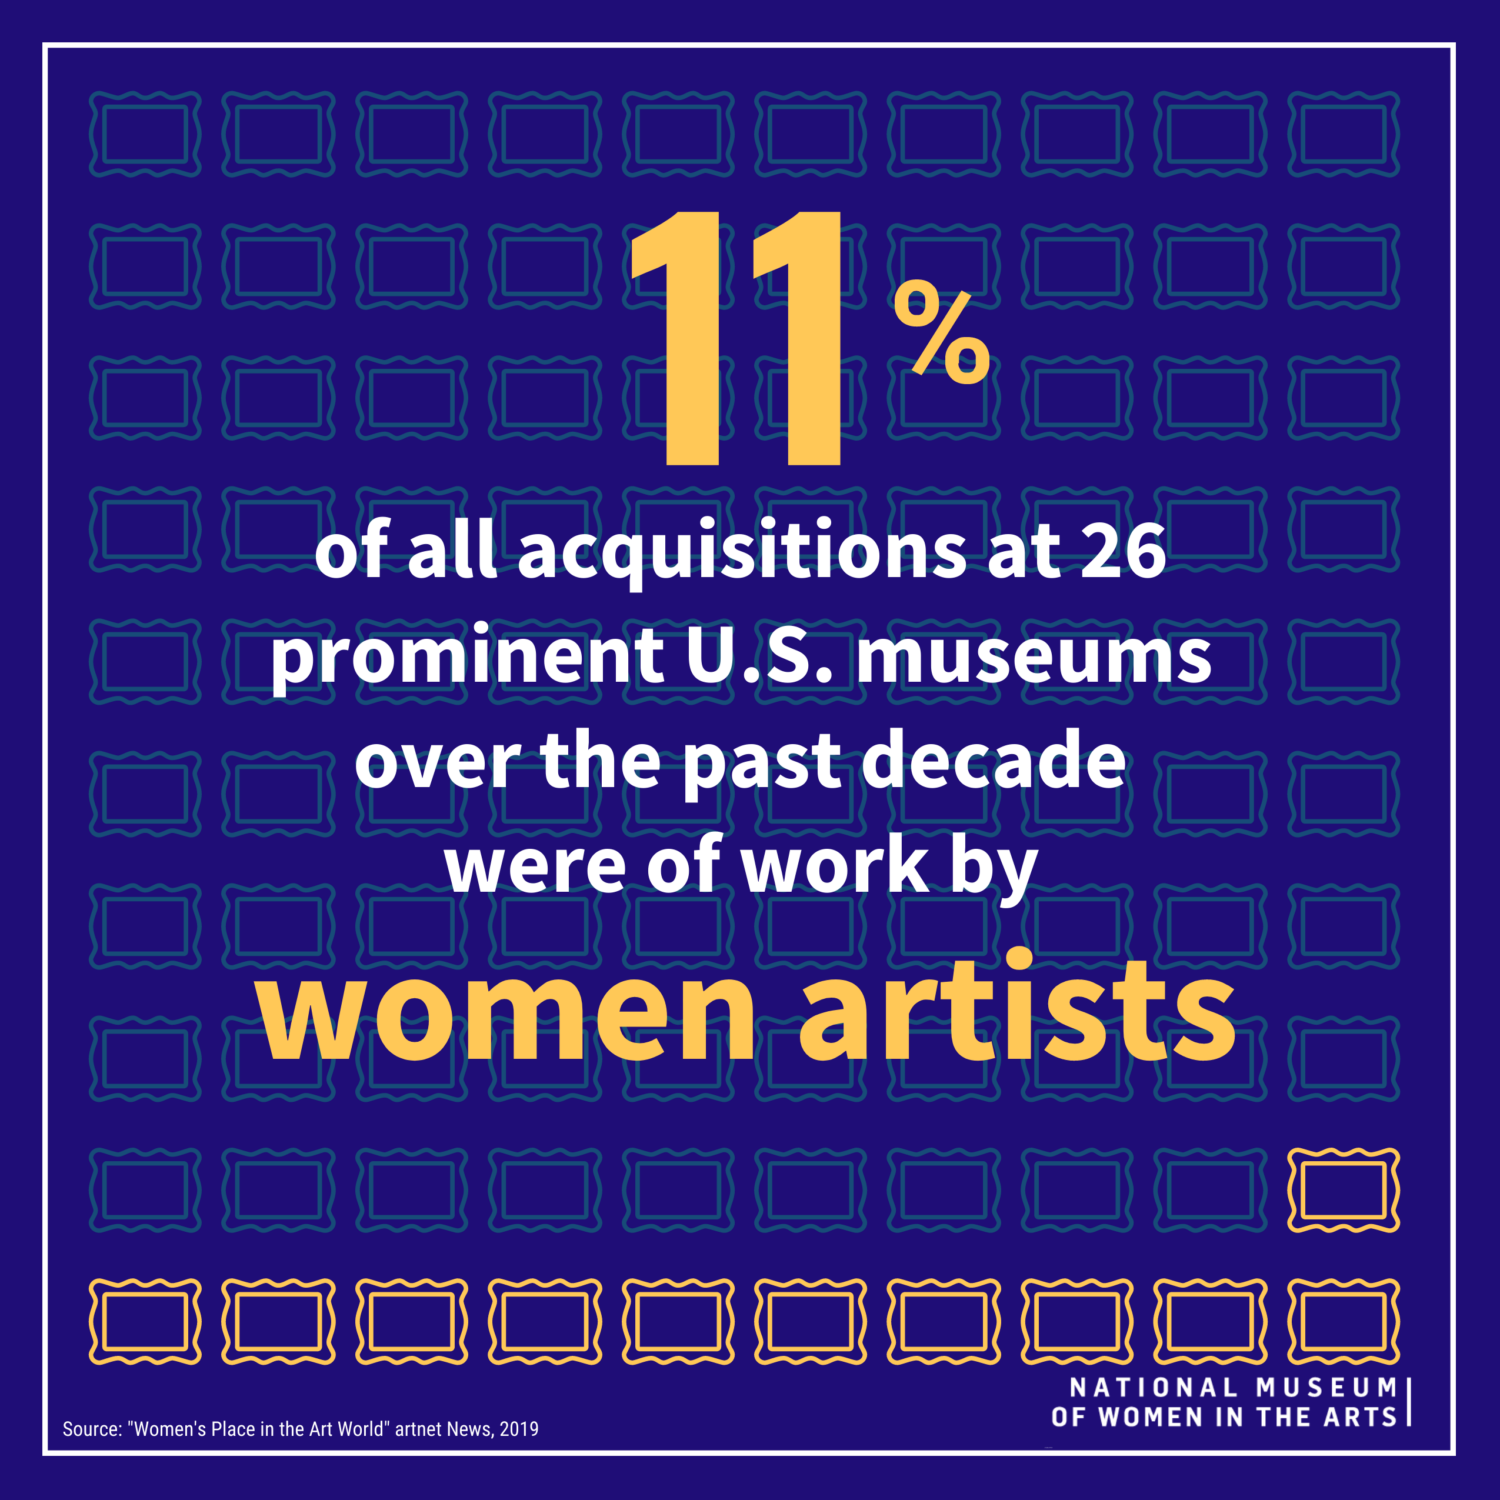 White and yellow text against a marine blue background reads: '11% of all acquisitions at 26 prominent U.S. museums over the past decade were of work by women artists'